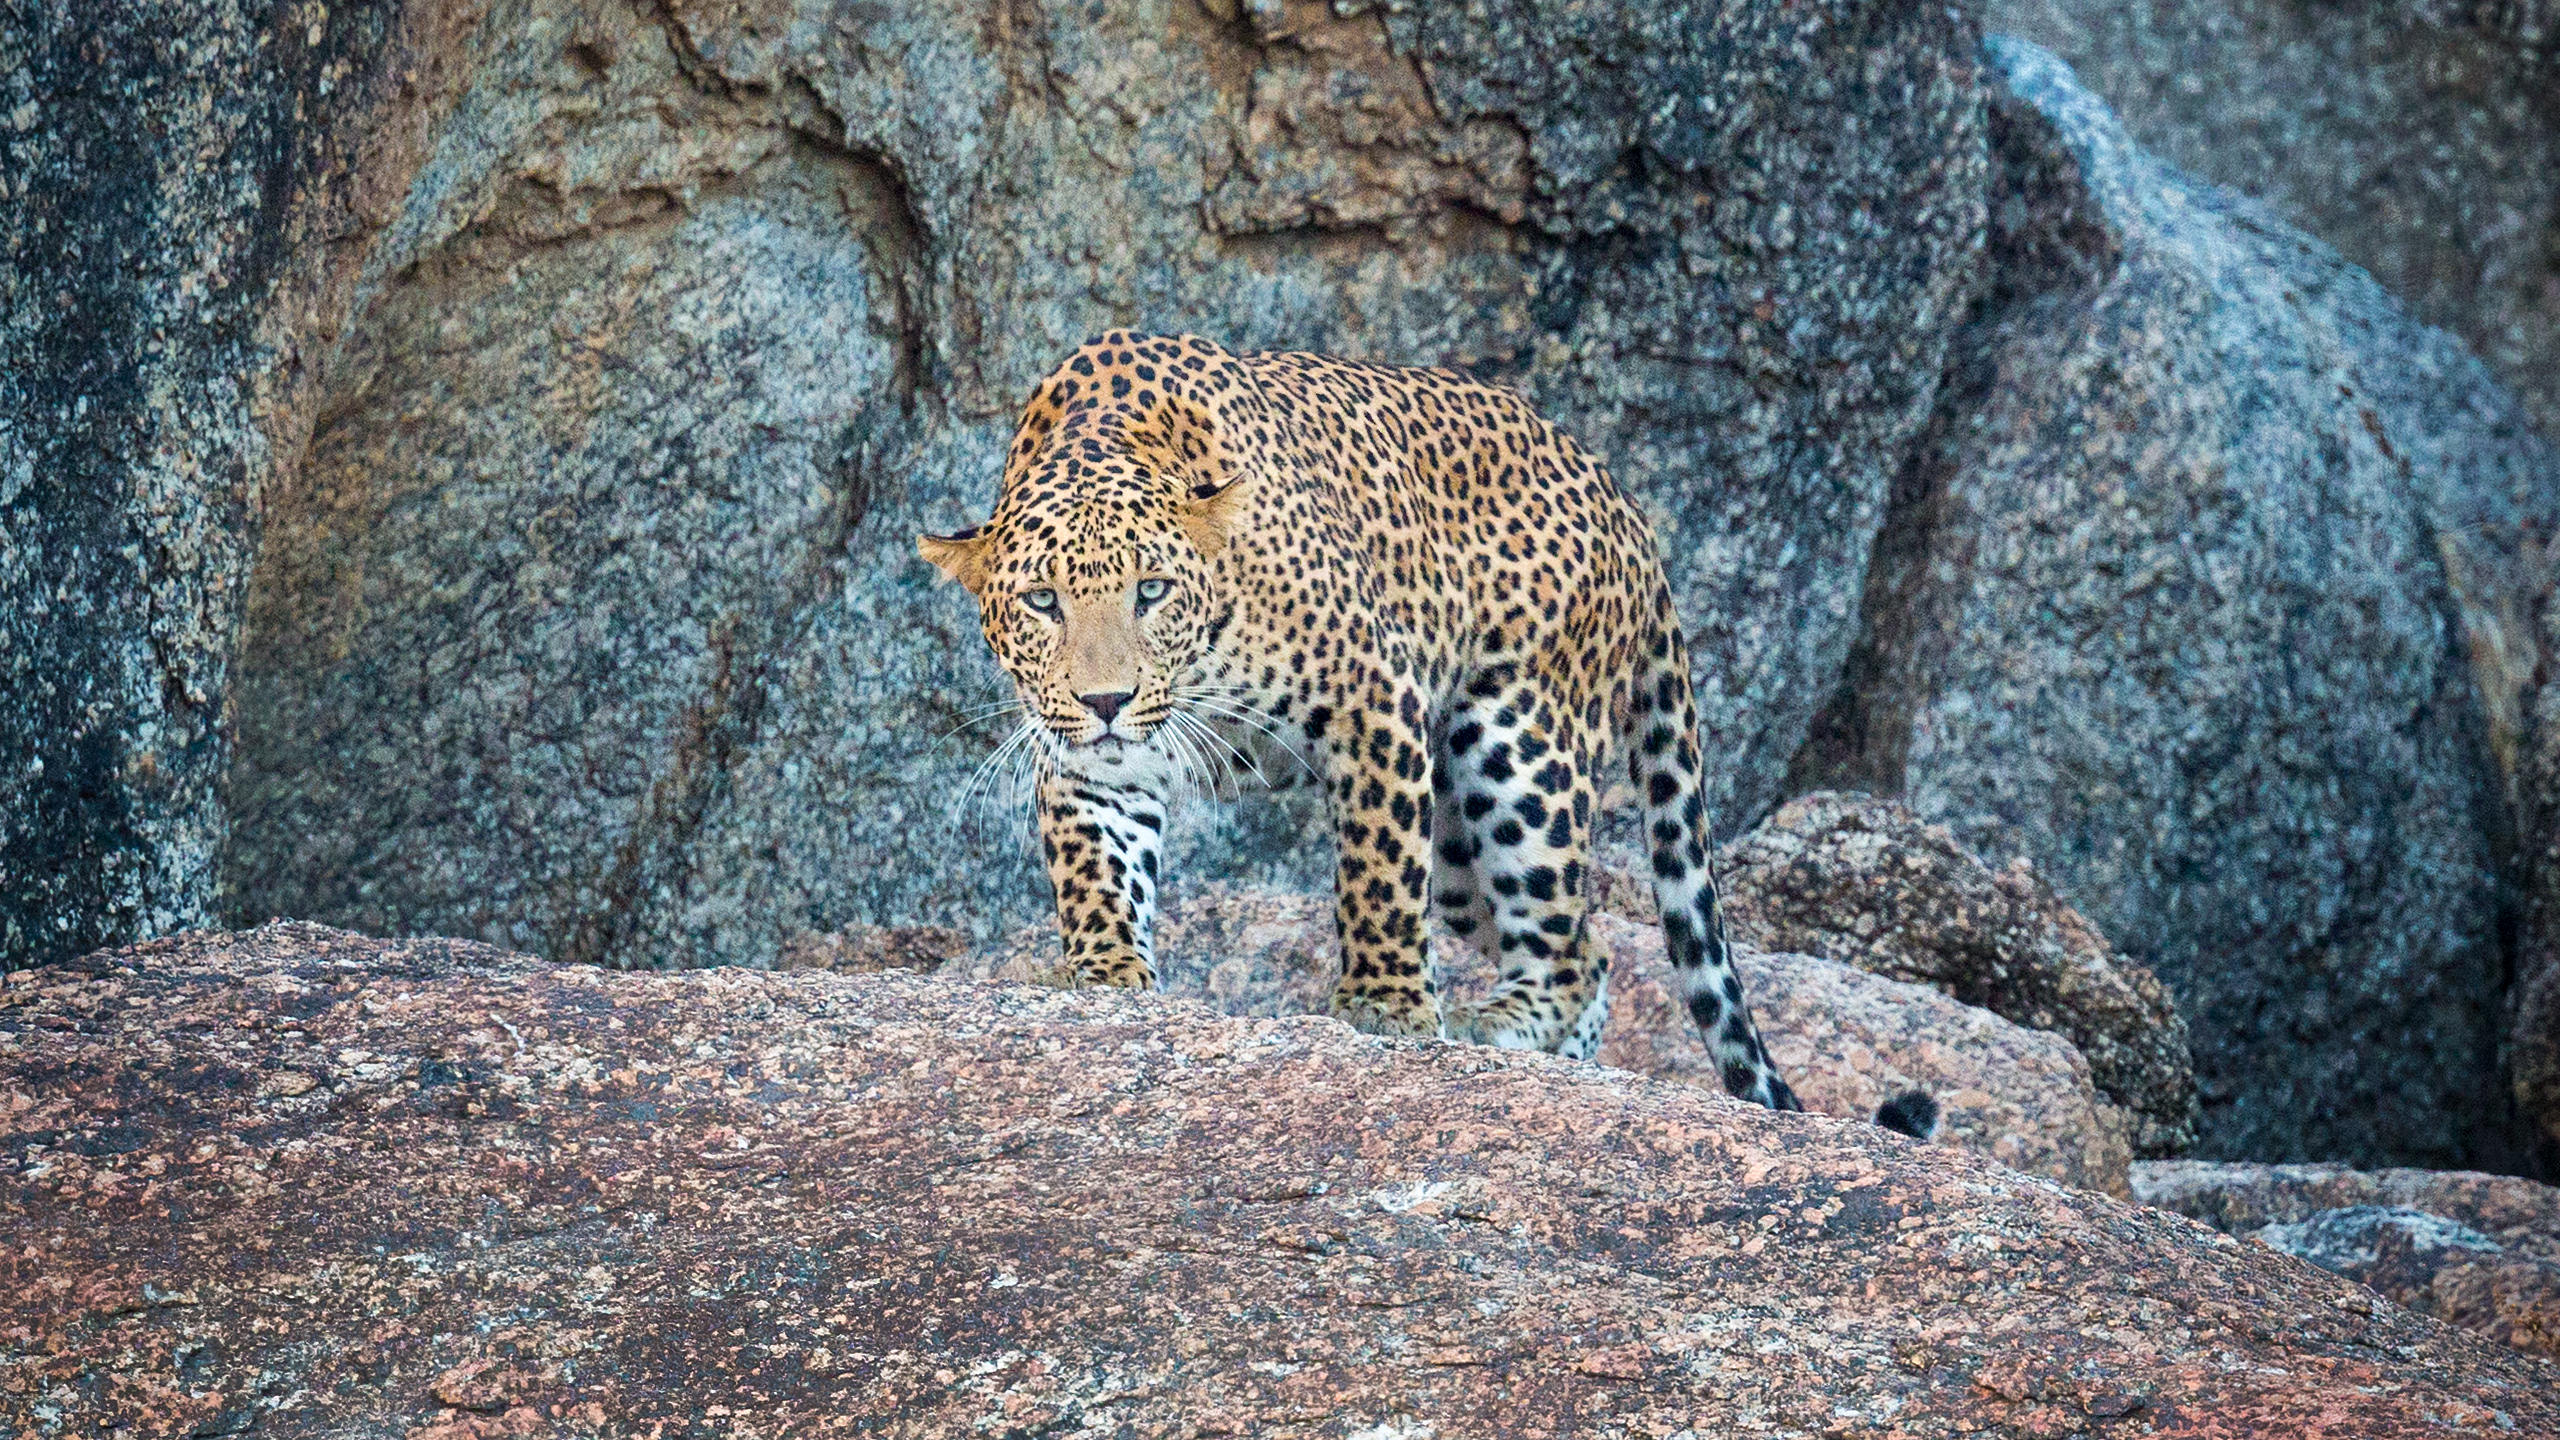 Indian Leopard in Bera Rajasthan by Arindam Bhattacharya